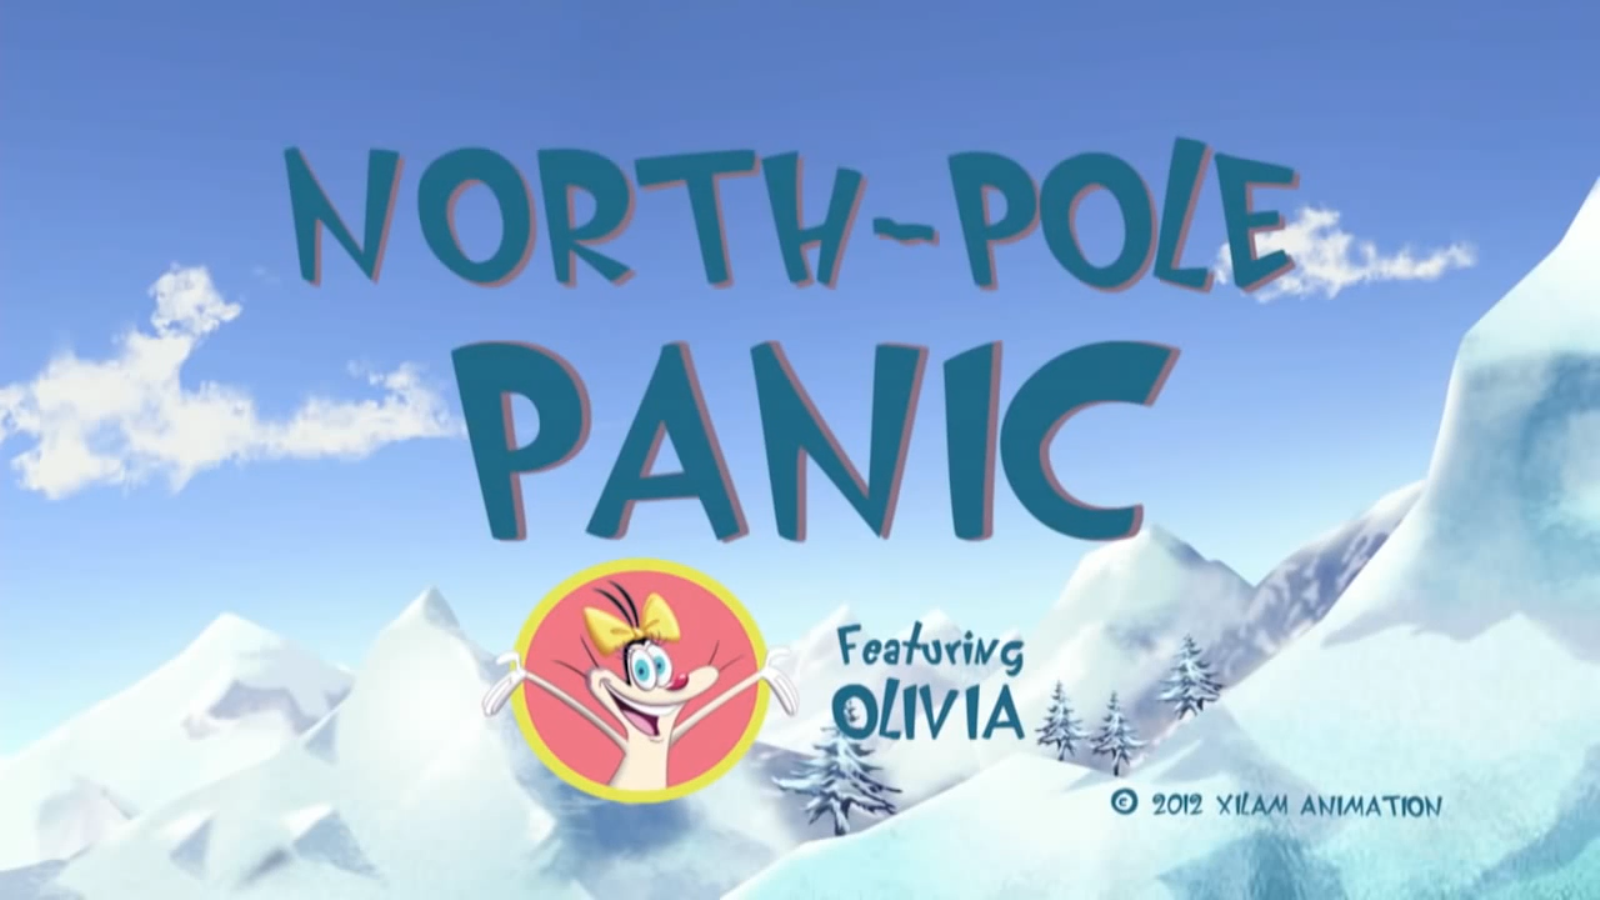 North-Pole Panic (Featuring Olivia) | Christmas Specials Wiki ...